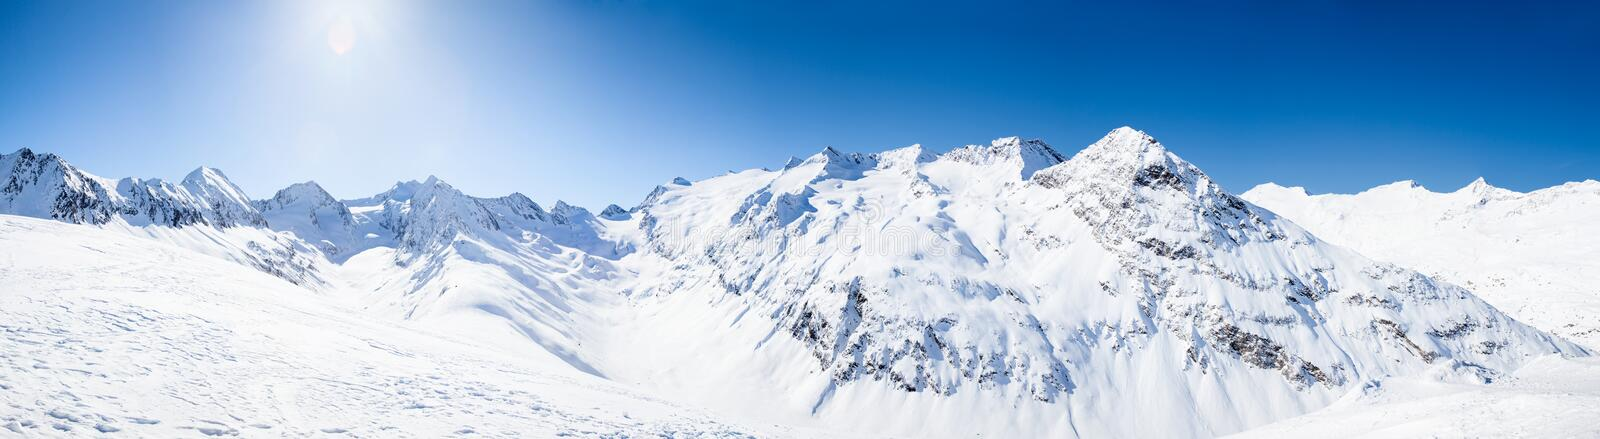 Download Panoramic Mountain View stock photo. Image of europe - 29868292